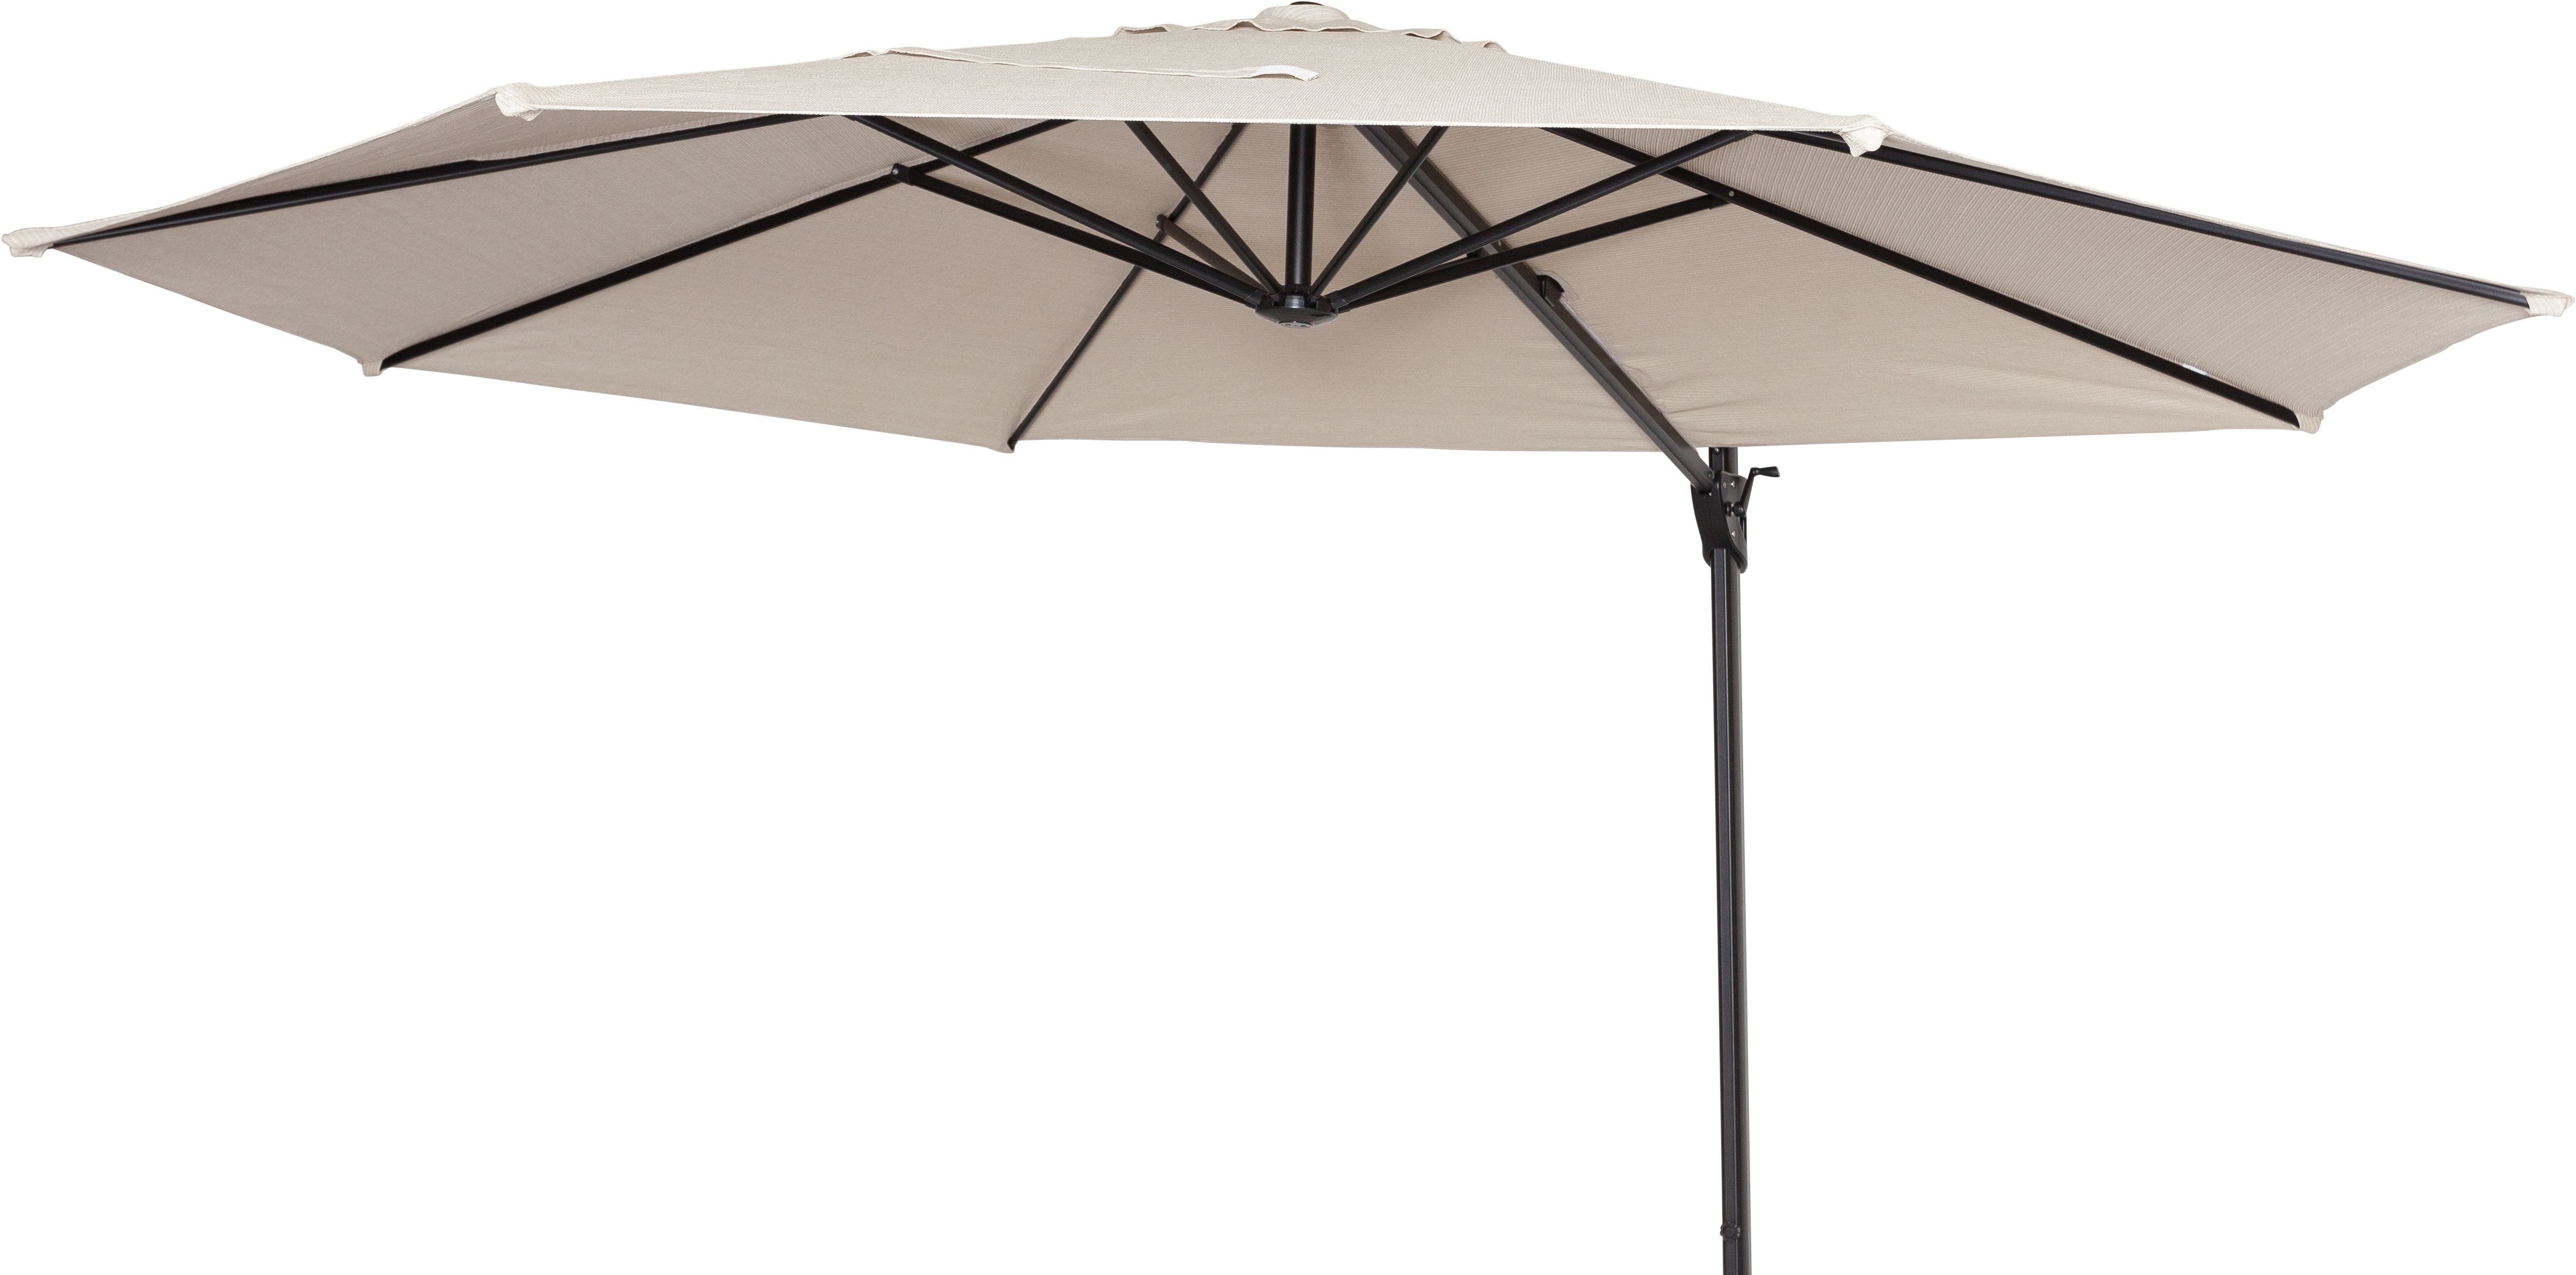 Emely Cantilever Sunbrella Umbrellas Within Well Liked Coolaroo 12' Cantilever Umbrella (View 14 of 20)